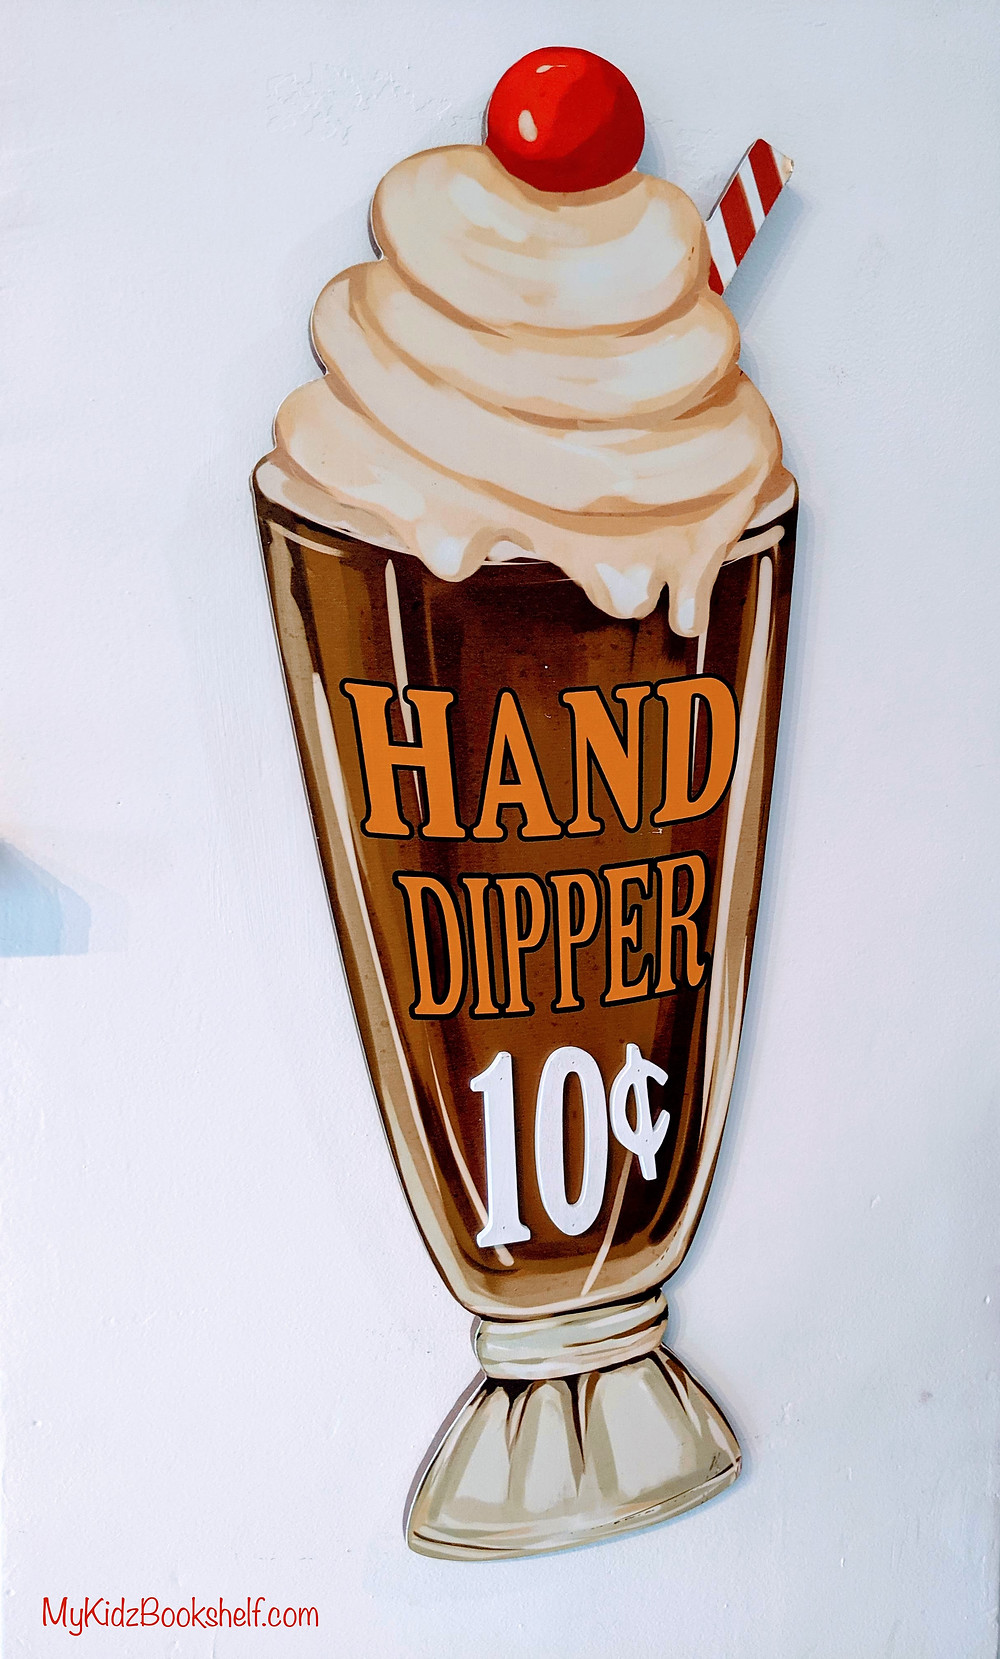 vintage ice cream sign that says 'Hand Dipper - 10 cents